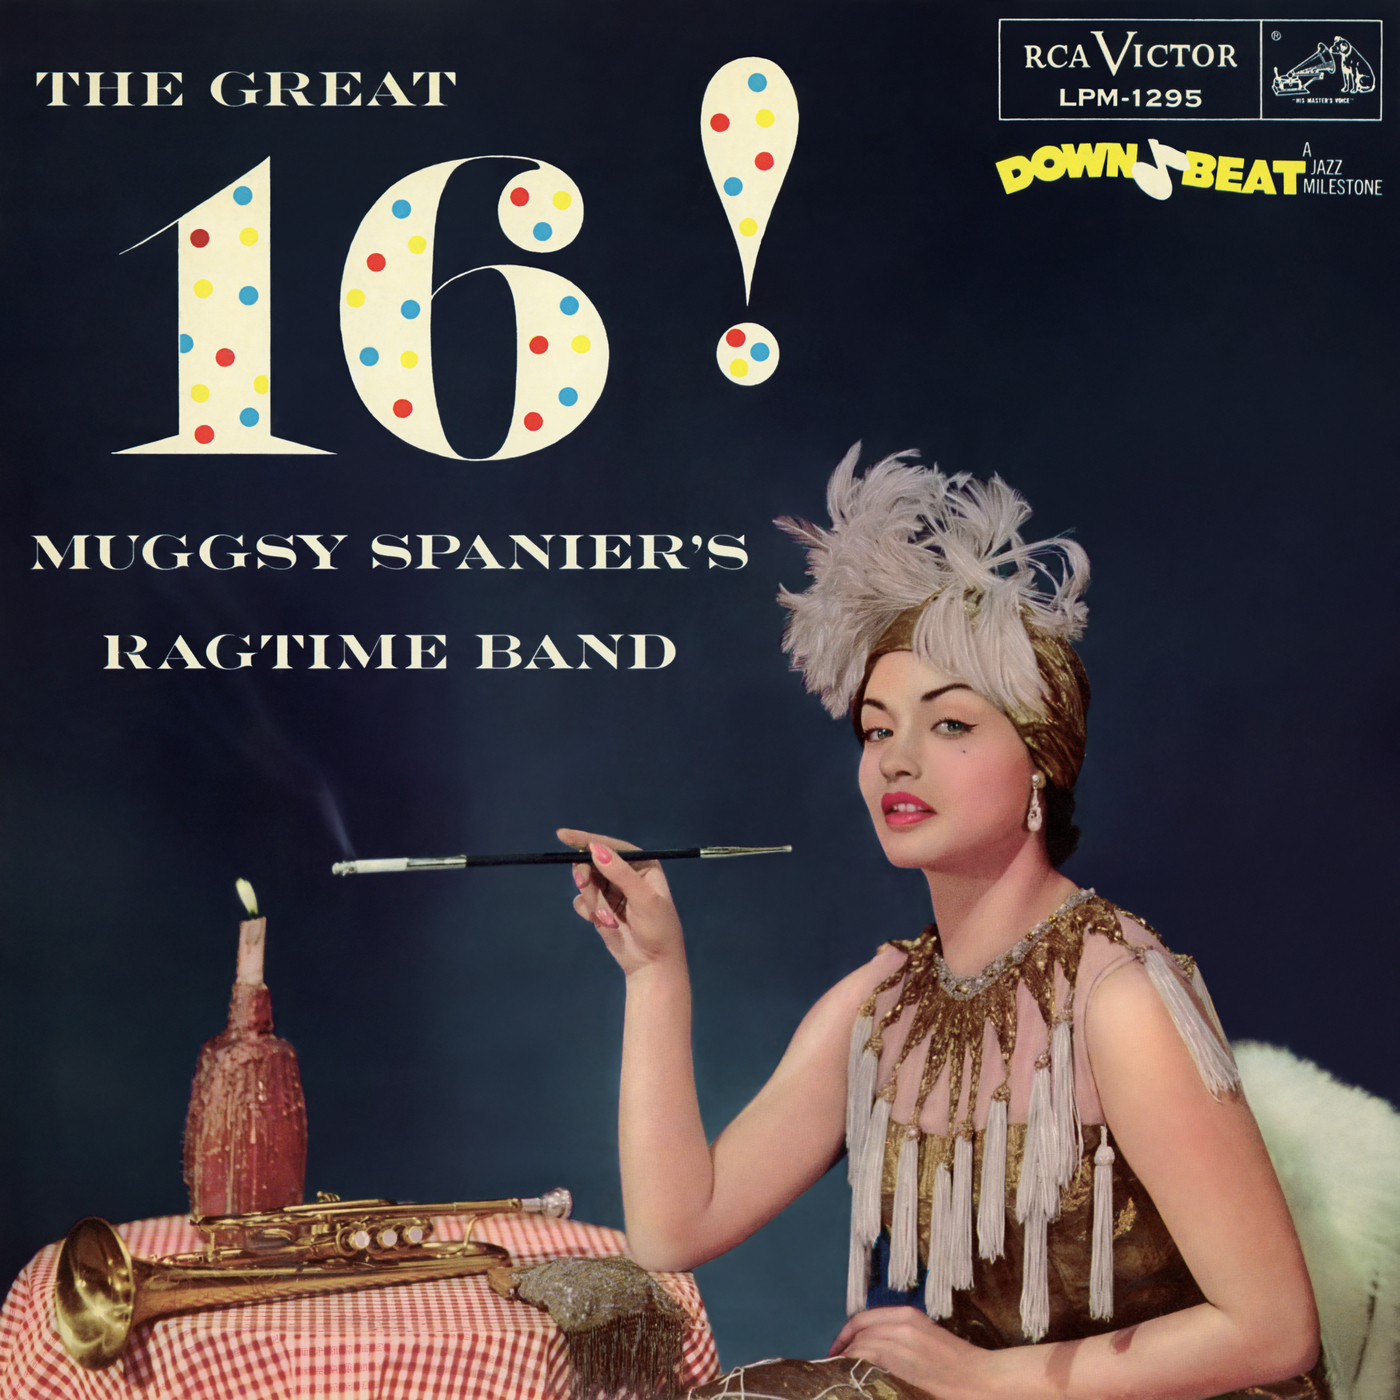 The Great 16 - Muggsy Spanier's Ragtime Band